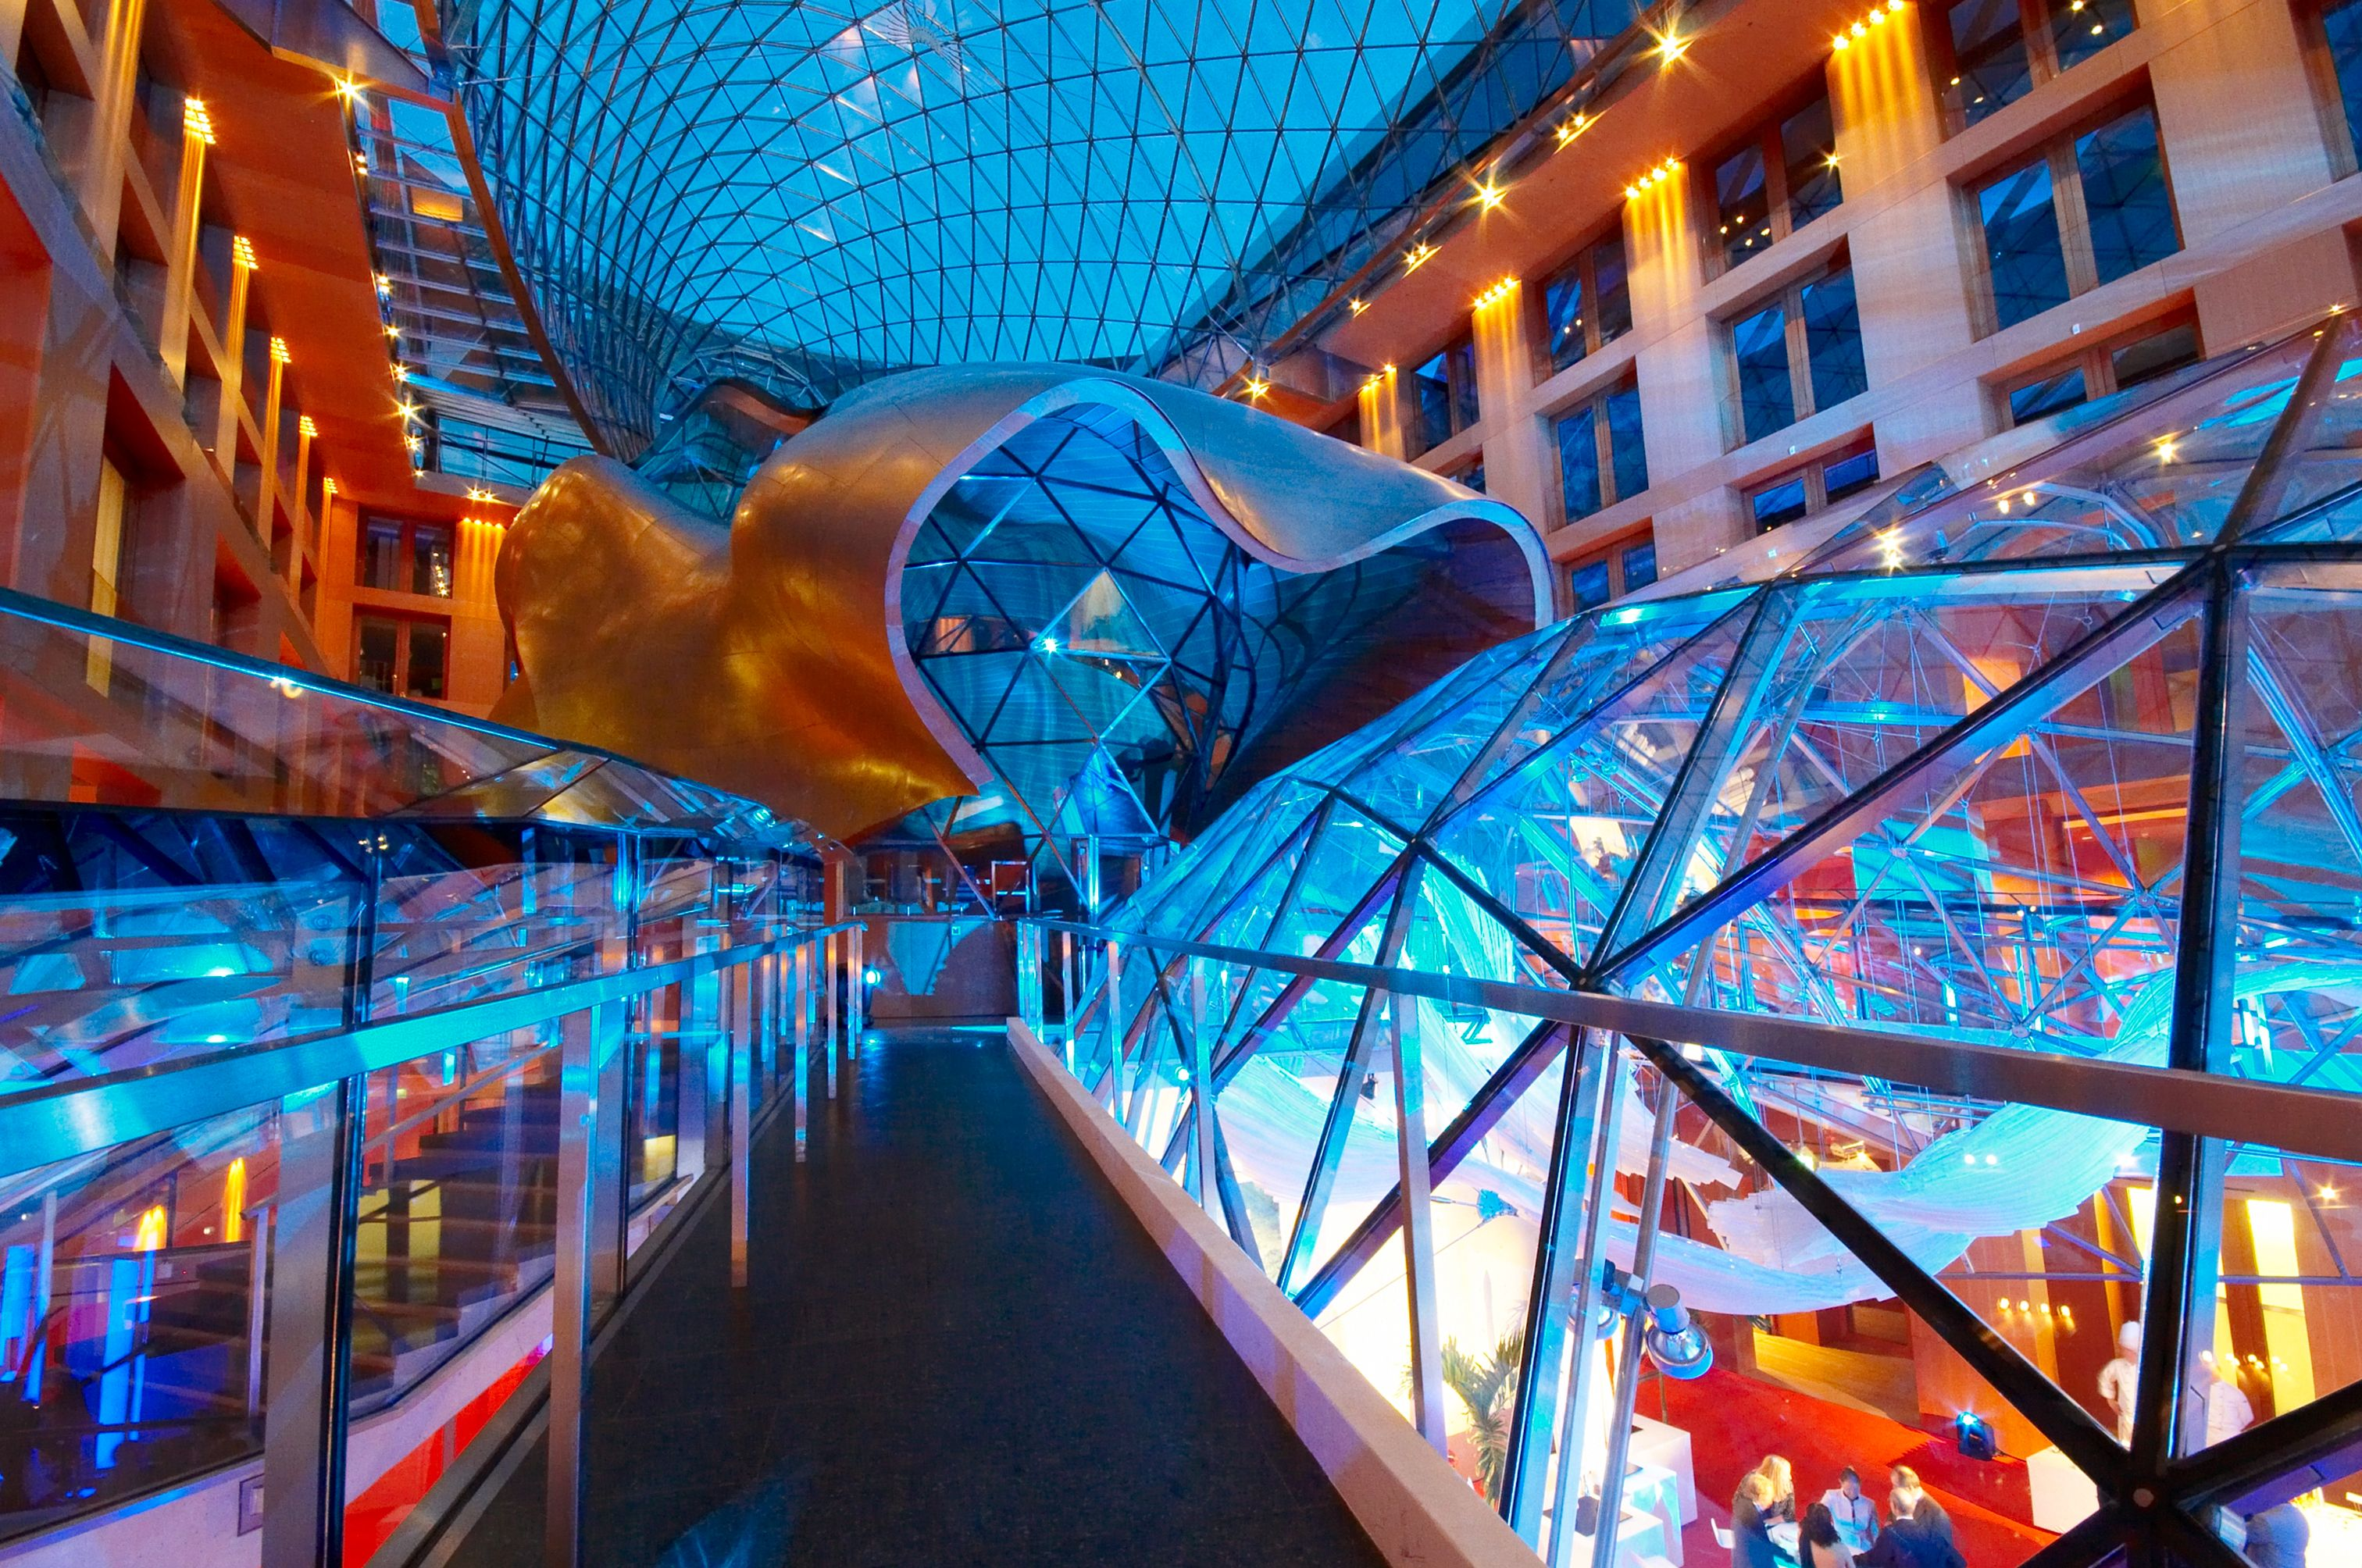 Atrium By Night Dz Bank Building Axica Convention Center In Berlin Gehry Architecture Gehry Banks Building